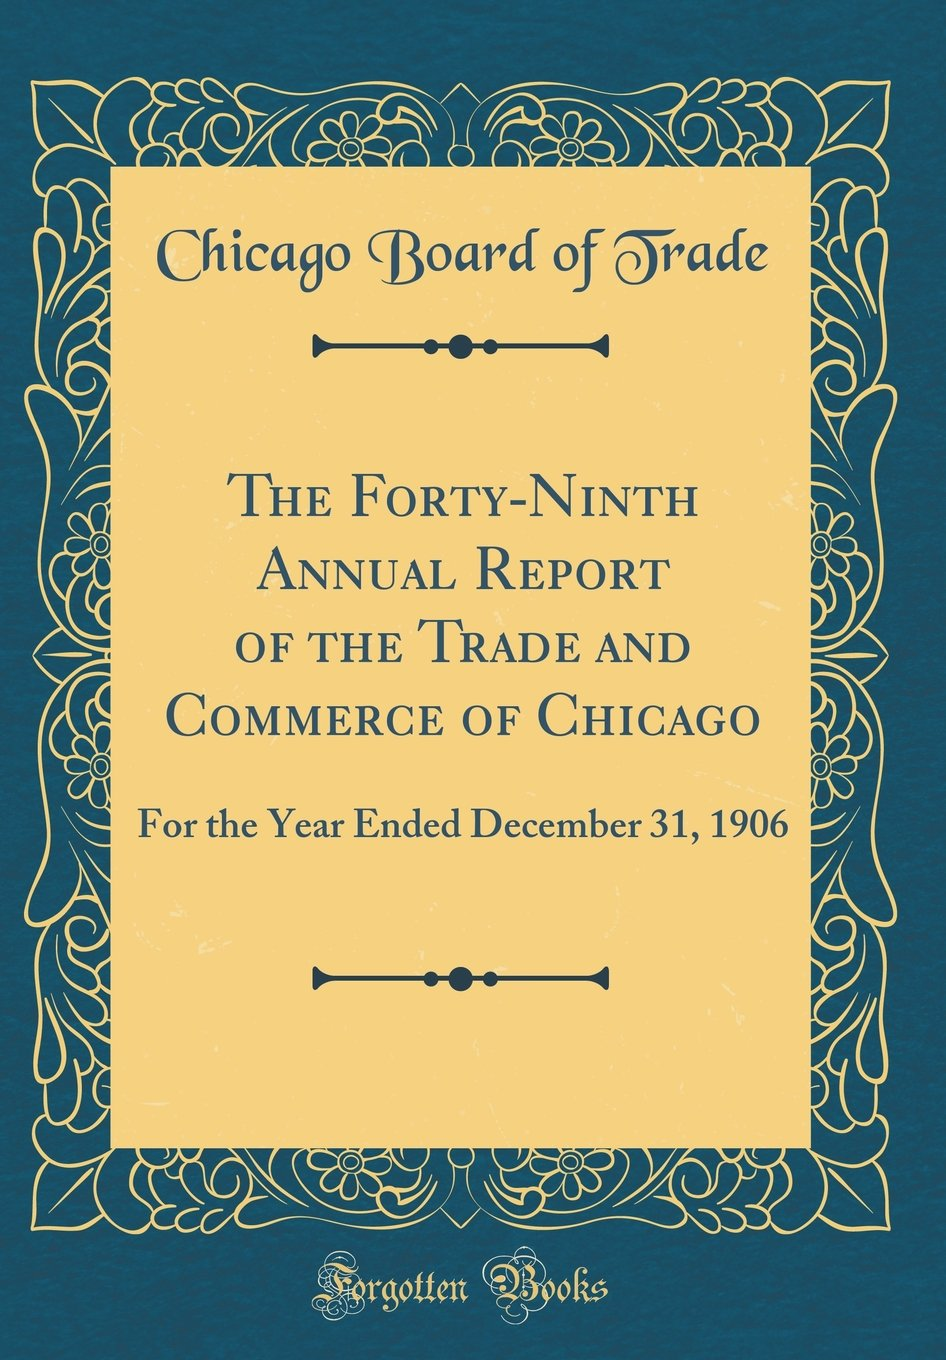 Download The Forty-Ninth Annual Report of the Trade and Commerce of Chicago: For the Year Ended December 31, 1906 (Classic Reprint) PDF